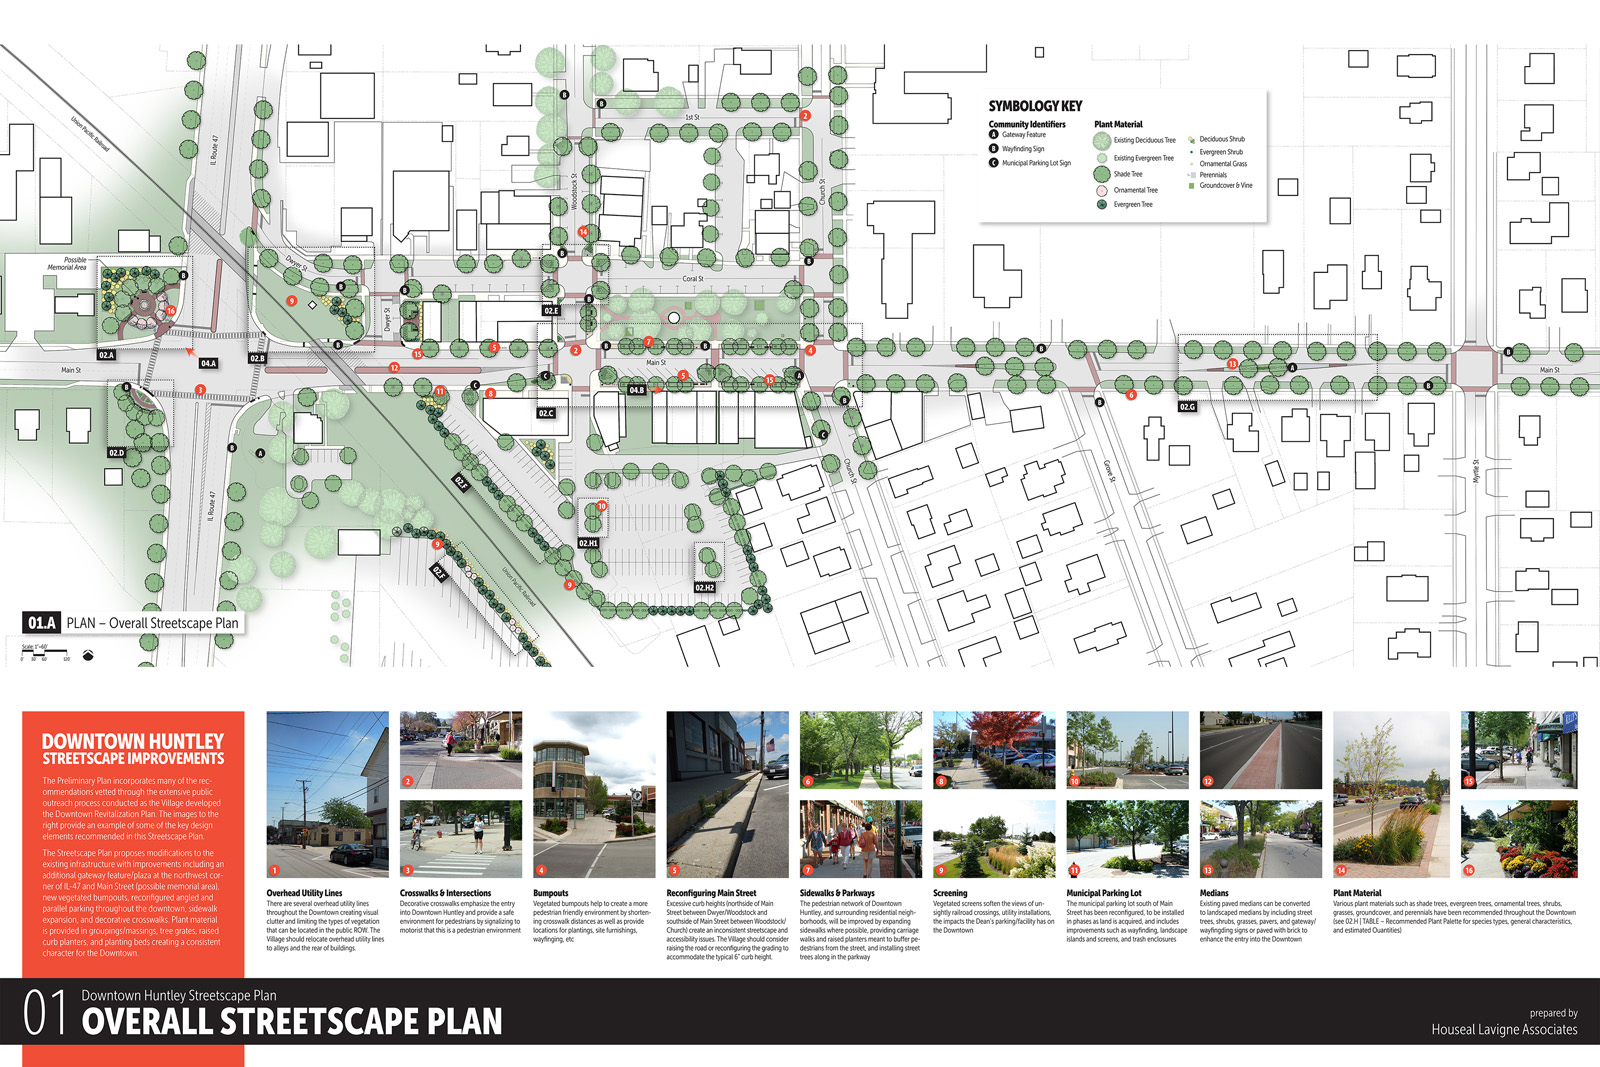 http://www.hlplanning.com/portals/wp-content/uploads/2014/10/Huntley-Streetscape-Plan-Board-1.jpg